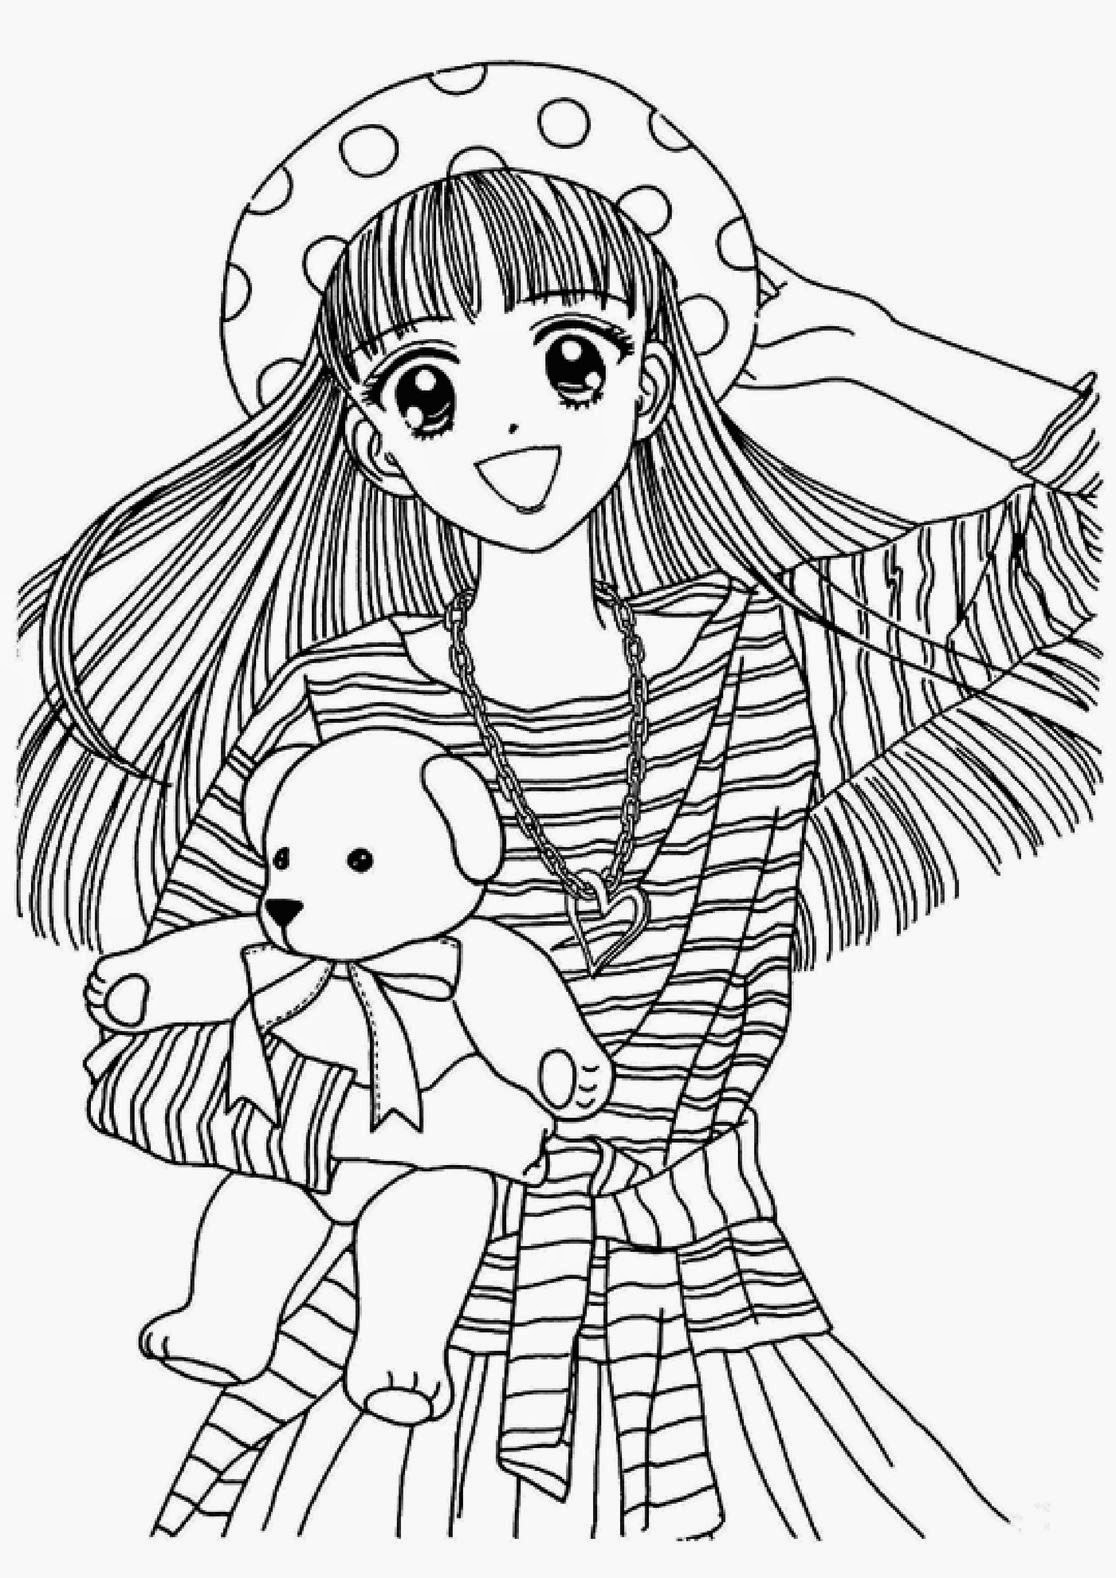 anime girl coloring pages to print 27 beautiful coloring sheets for teens in 2020 manga anime print pages girl coloring to